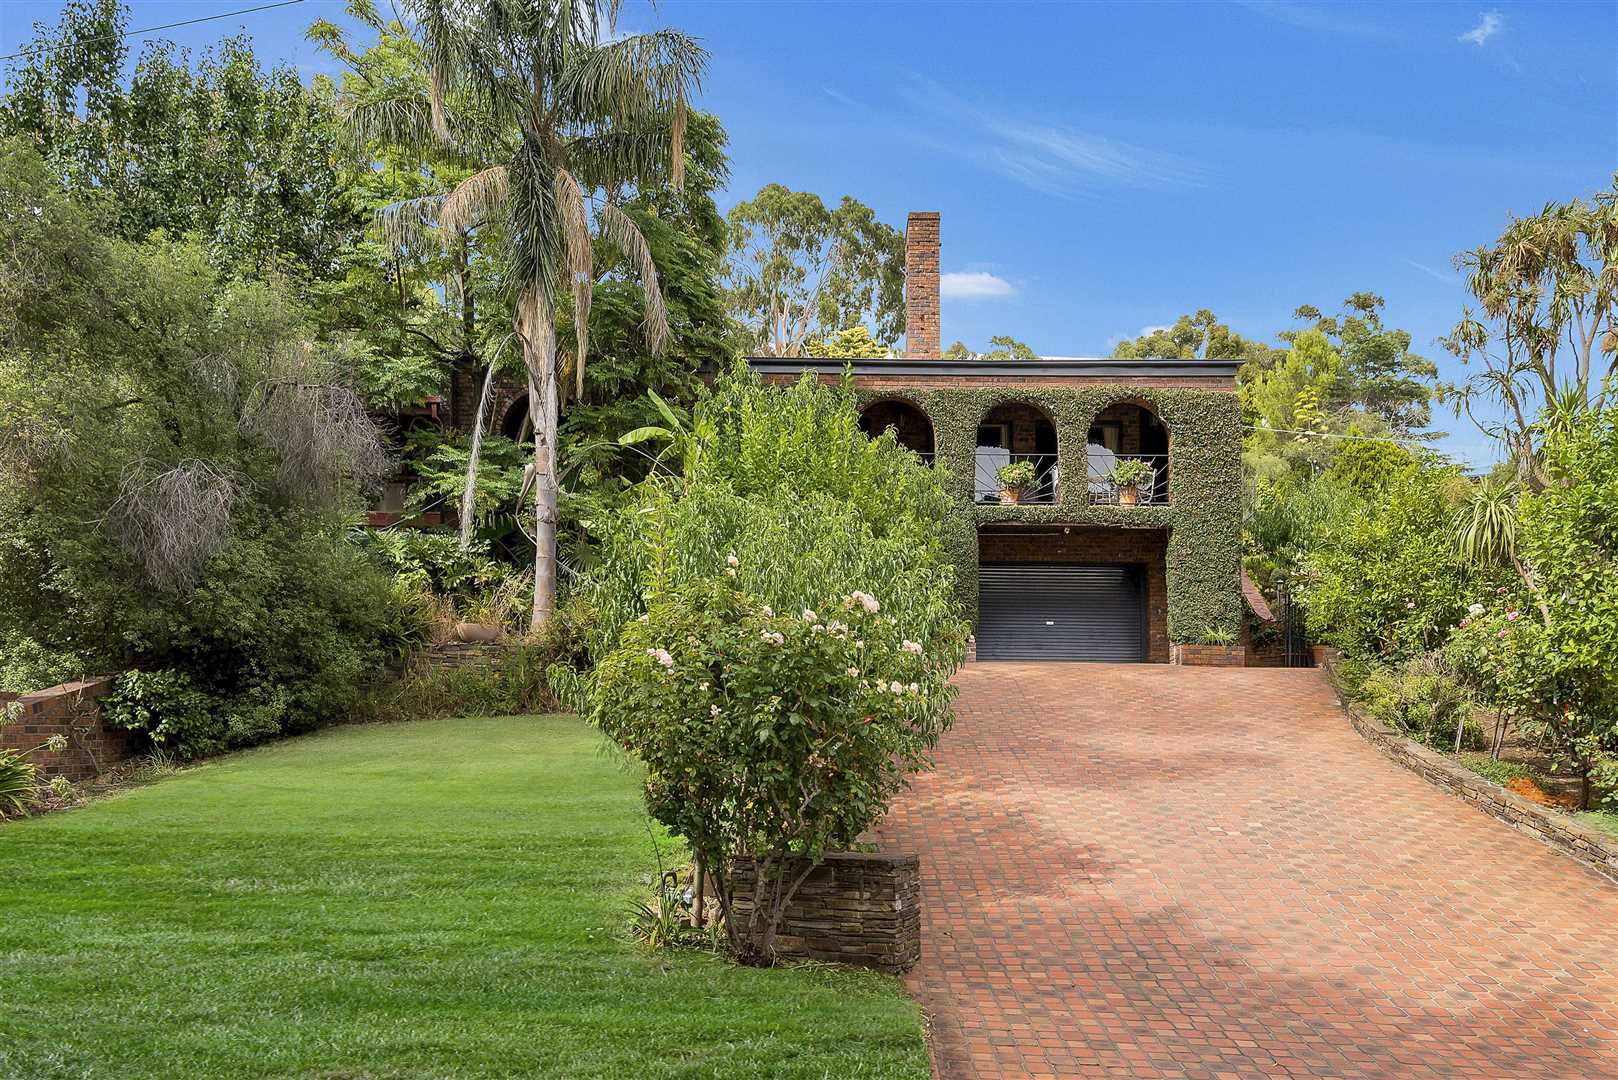 A Must-see Monumentally Magnificent Home!